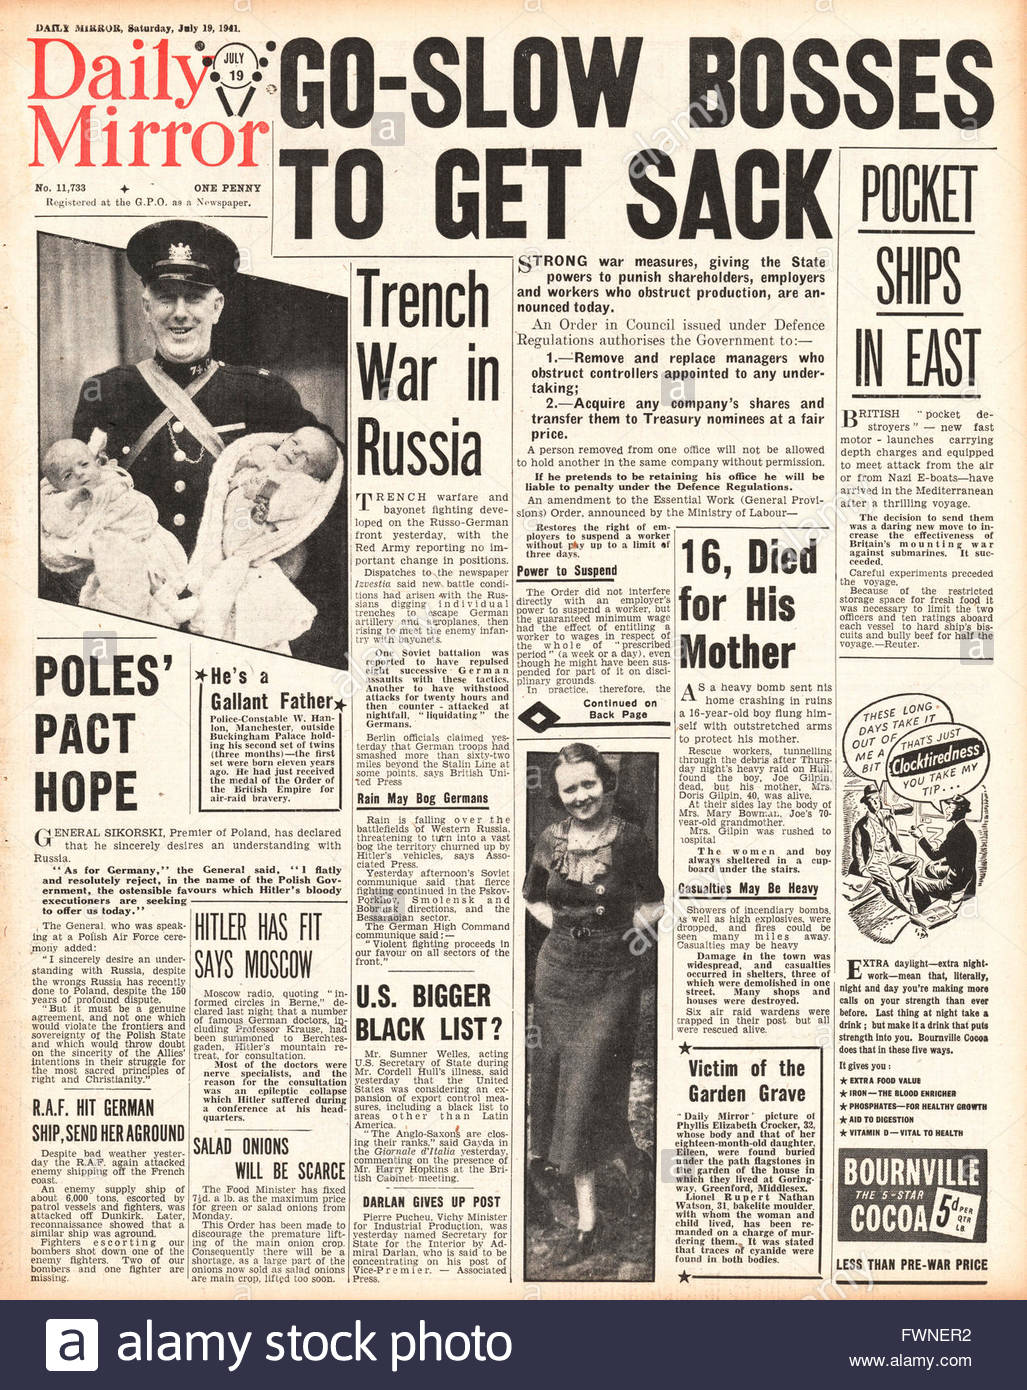 1941 front page  Daily Mirror Government Announces Stricter Defence Regulations against Employers and Companies Stock Photo